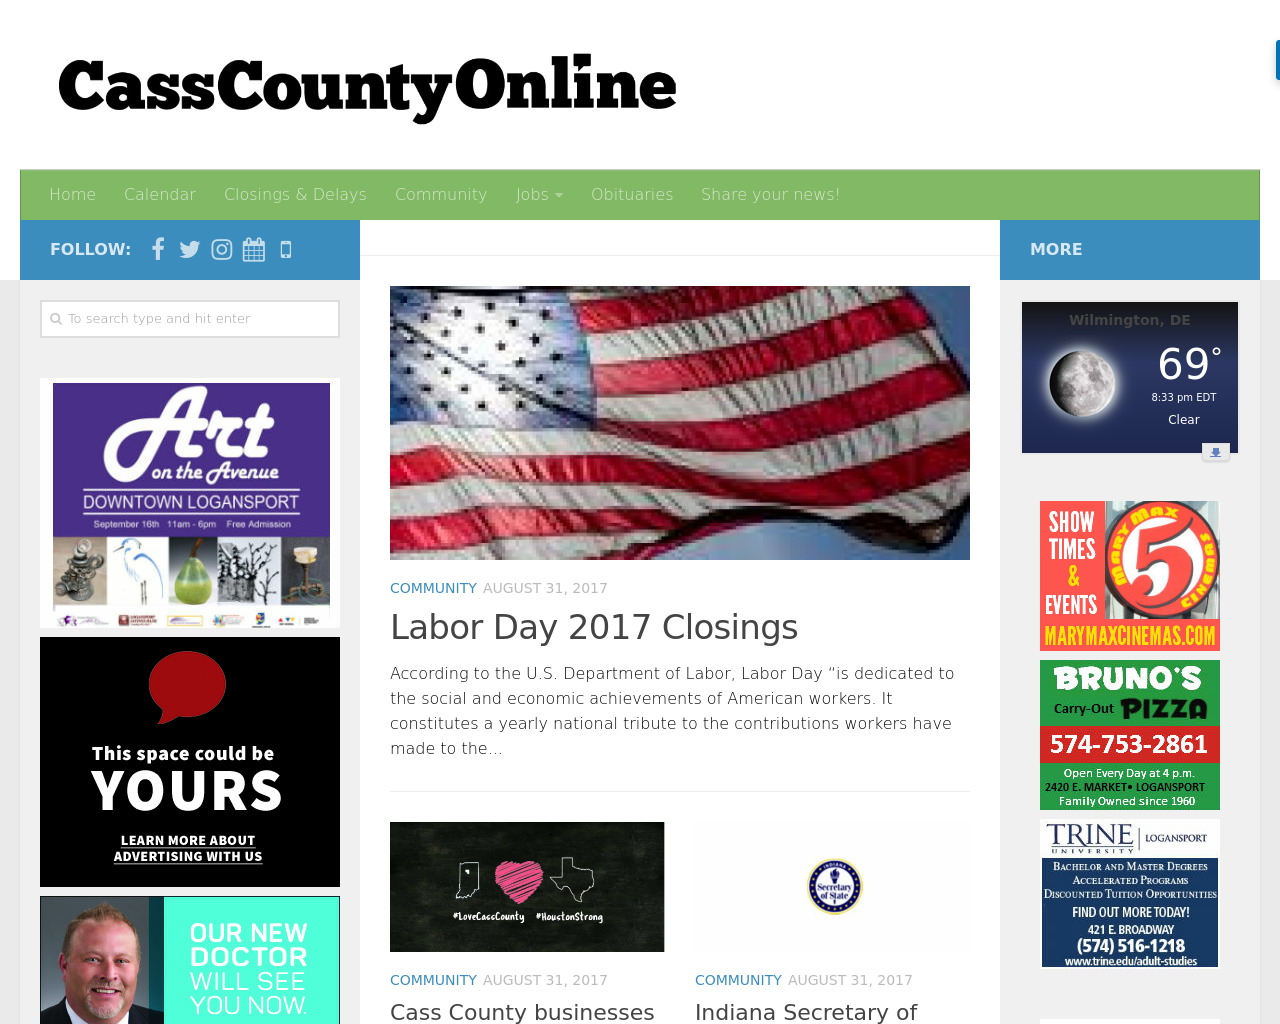 Casscountyonline-Advertising-Reviews-Pricing